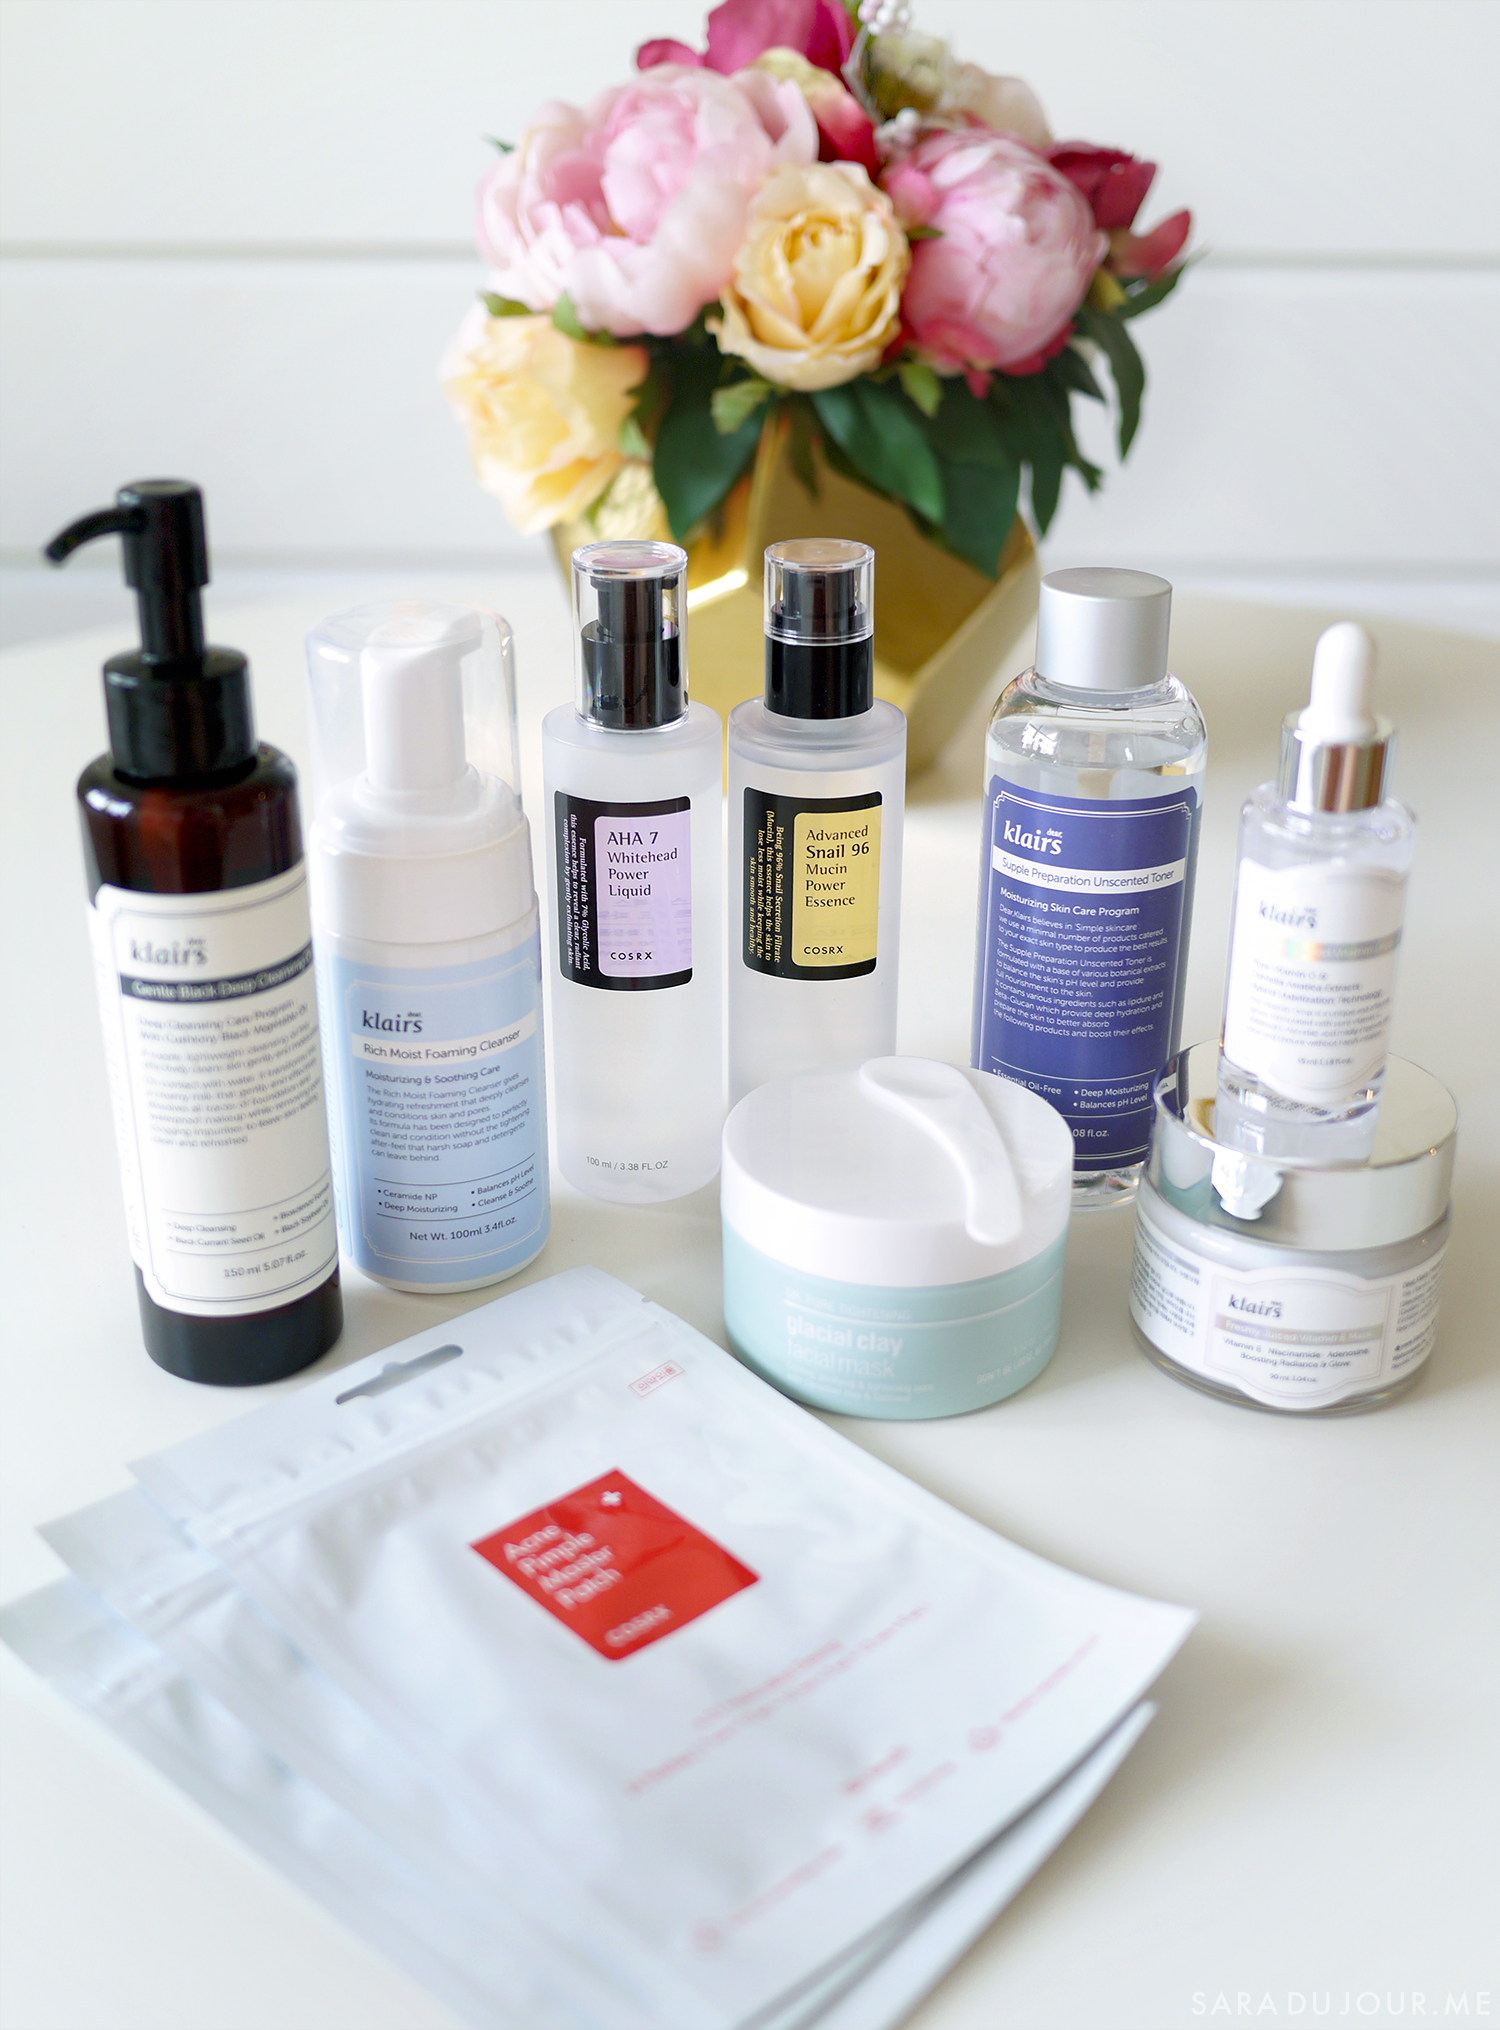 Korean Skincare Haul: Klairs, COSRX, and more | Sara du Jour